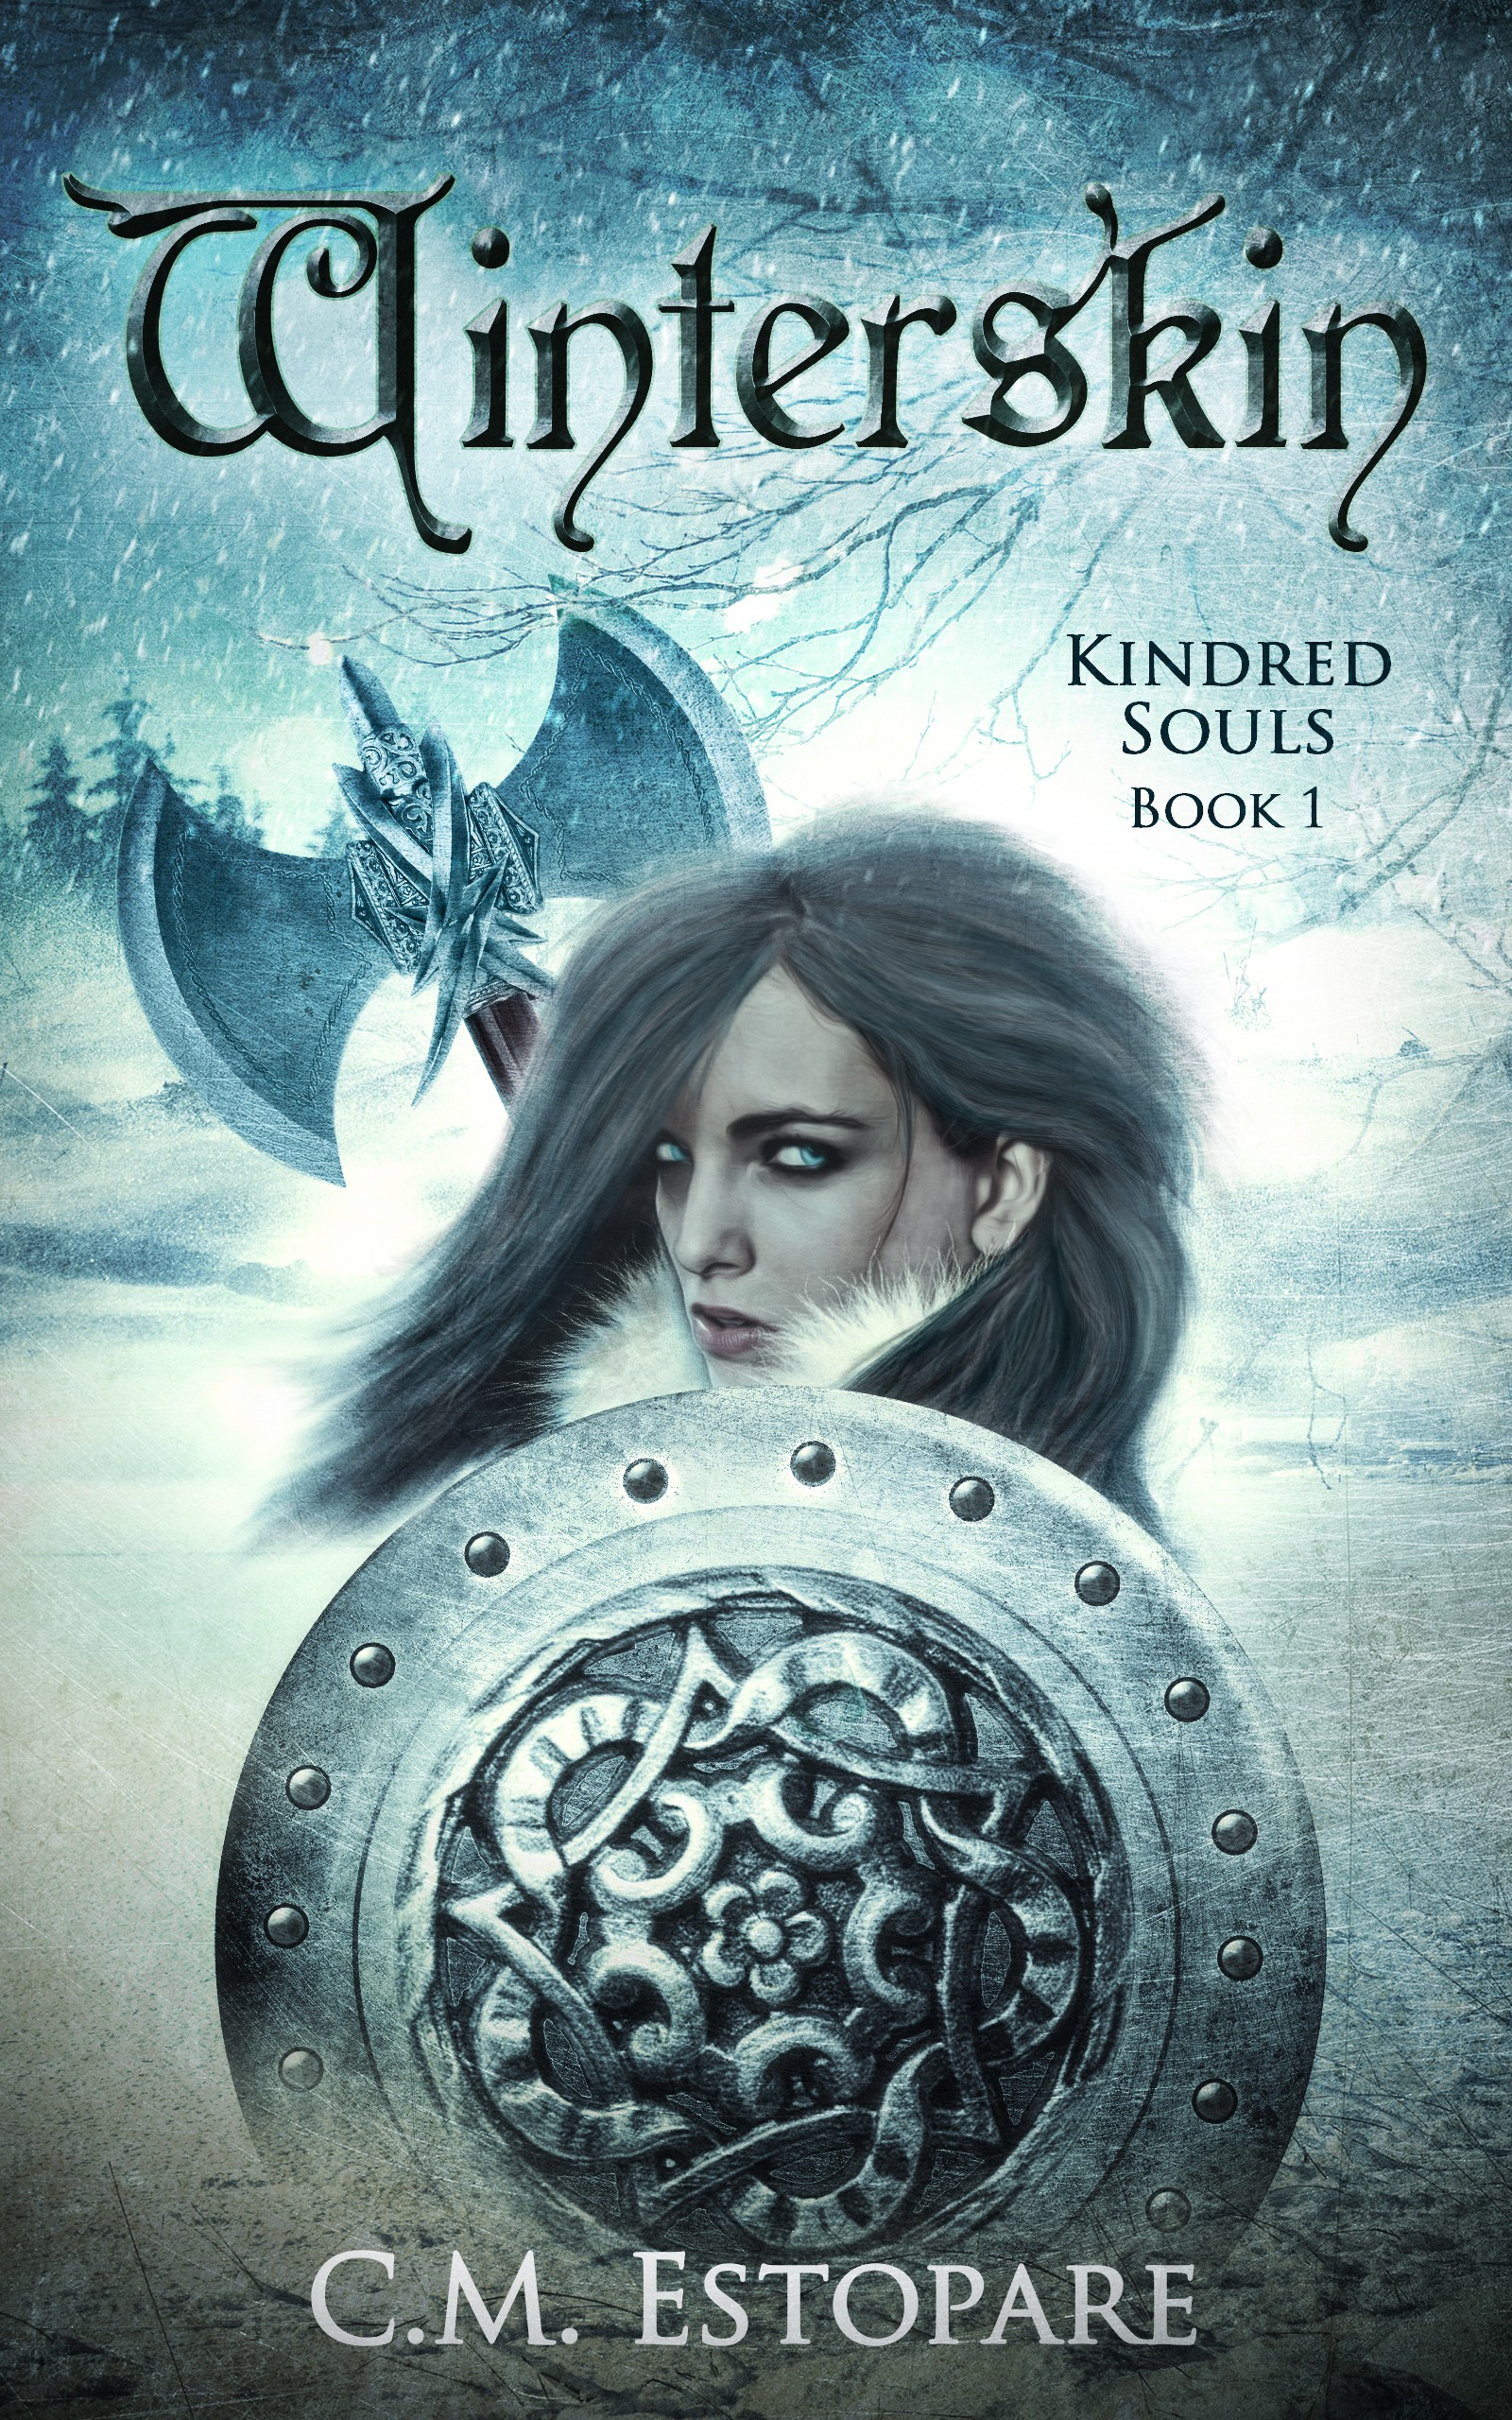 Design a gritty cover for Winterskin